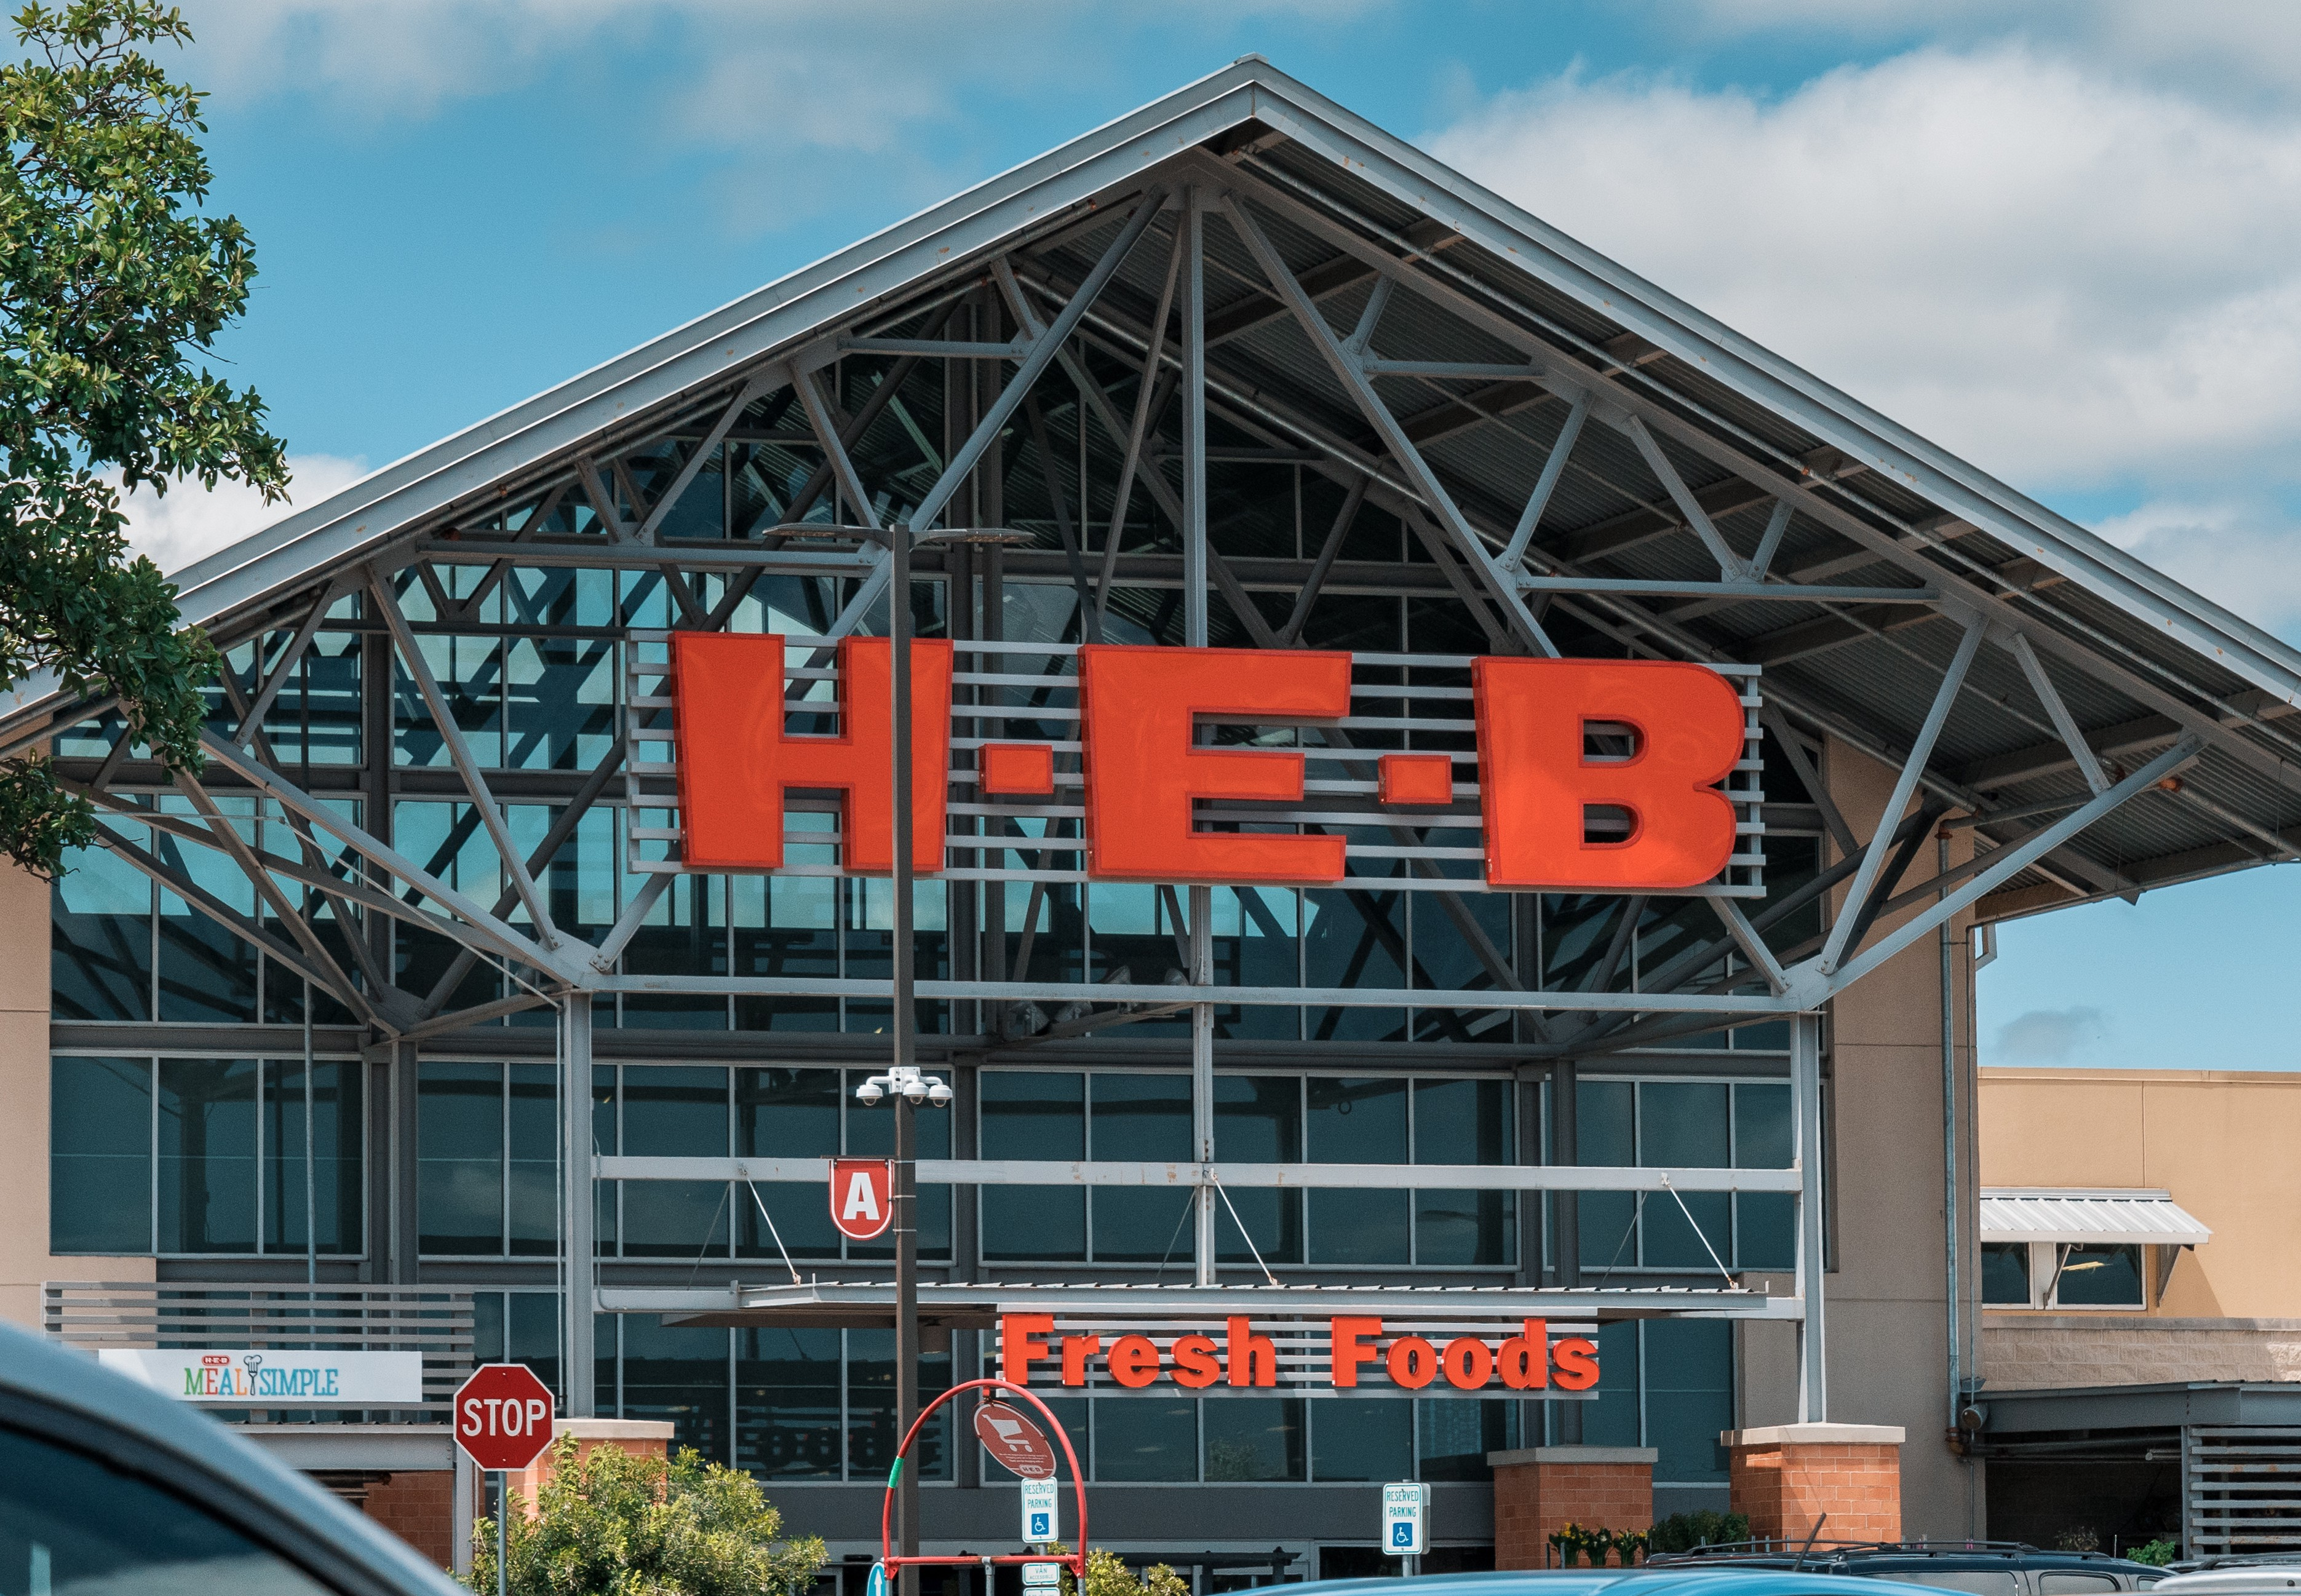 H-E-B Grocery Store and parker cars in front, Texas